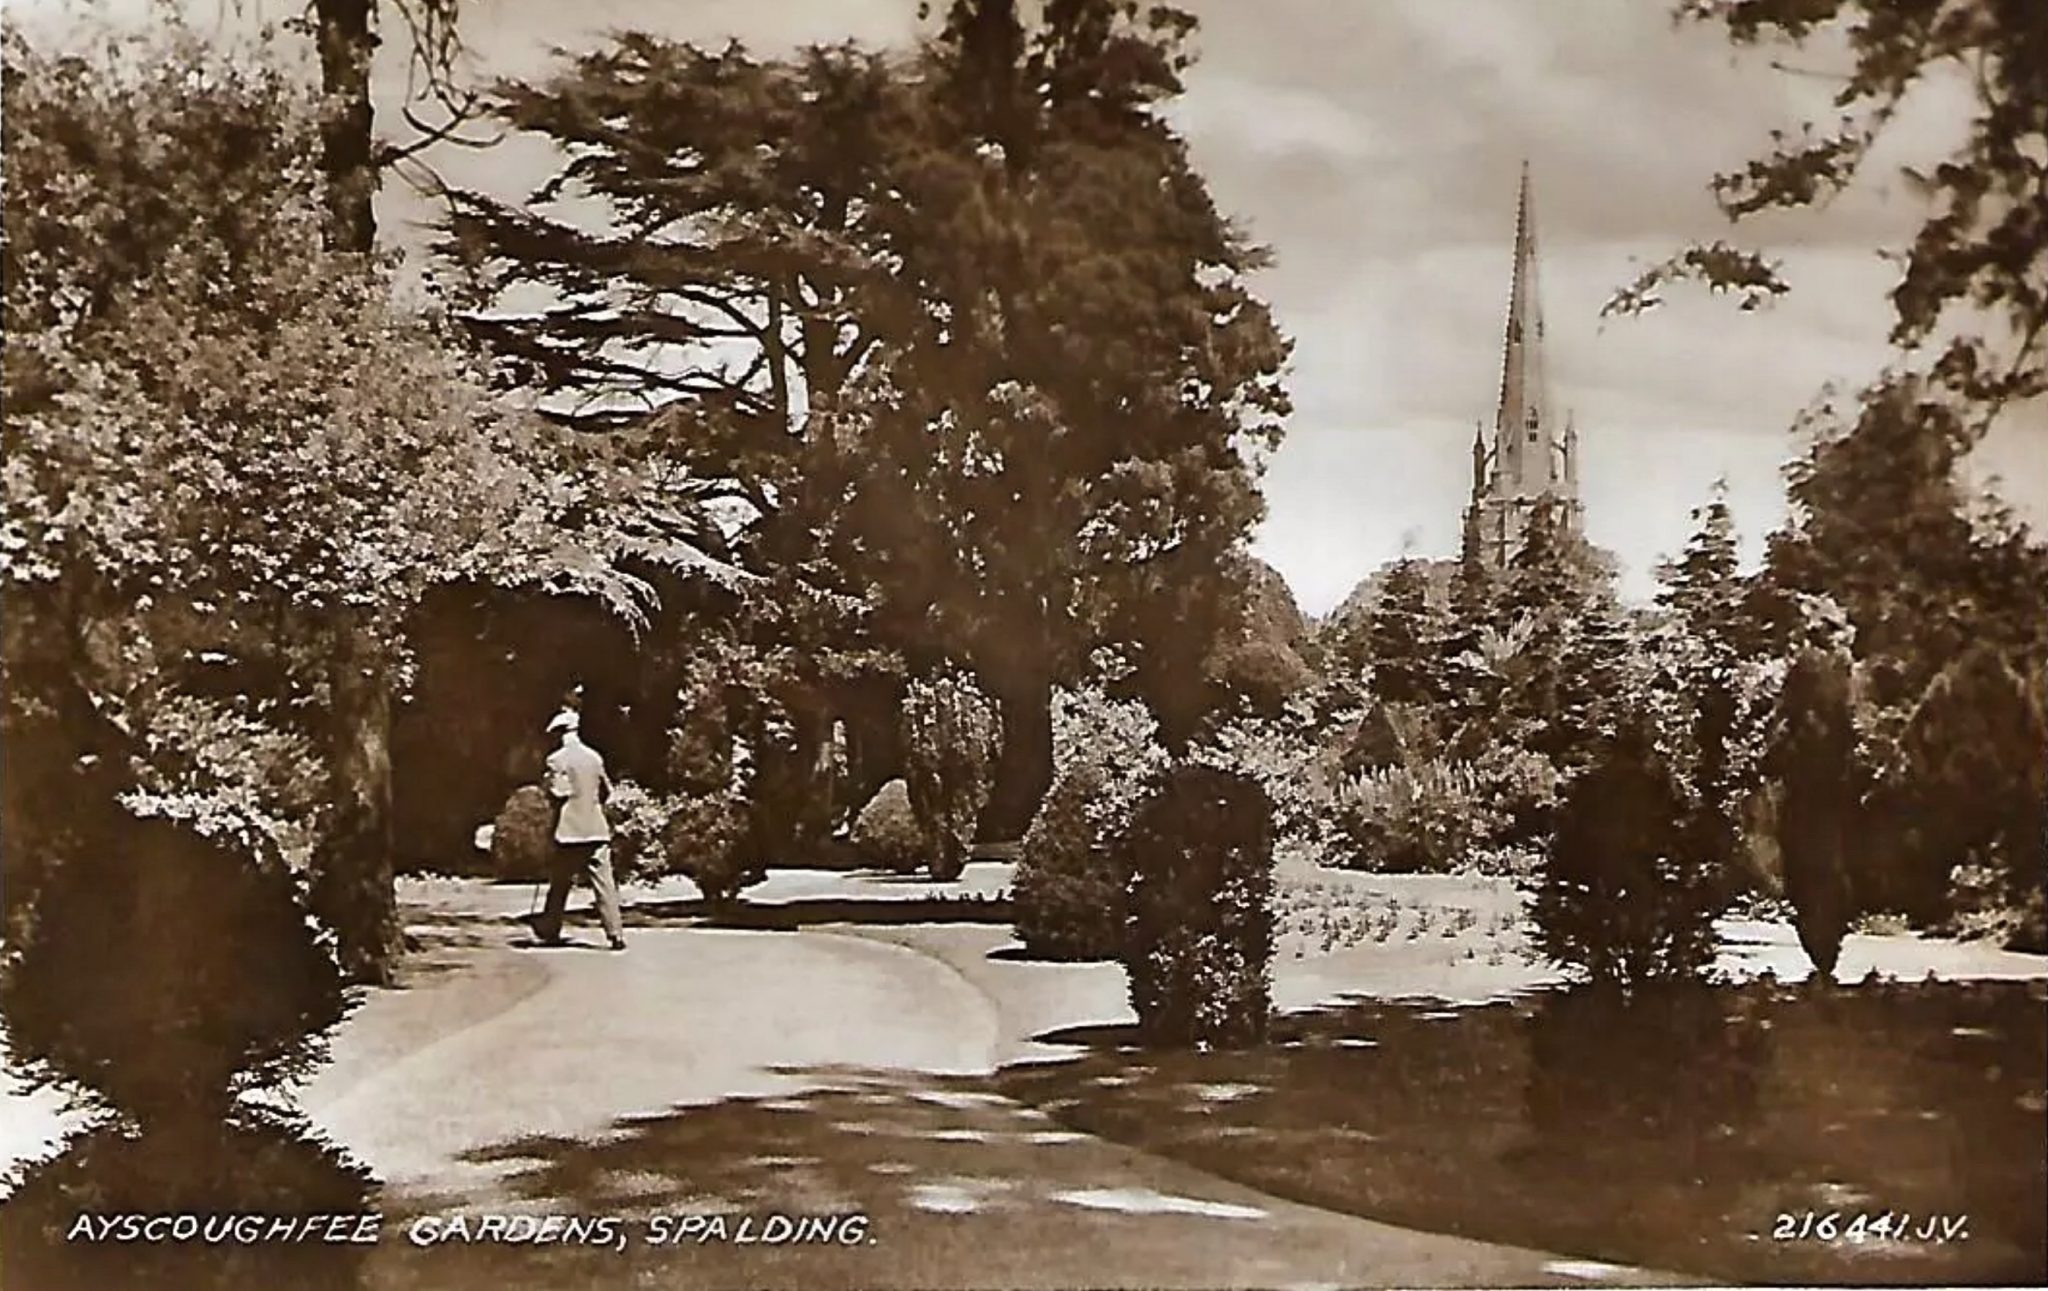 Postcard of Ayscoughfee Gardens including Parish Church